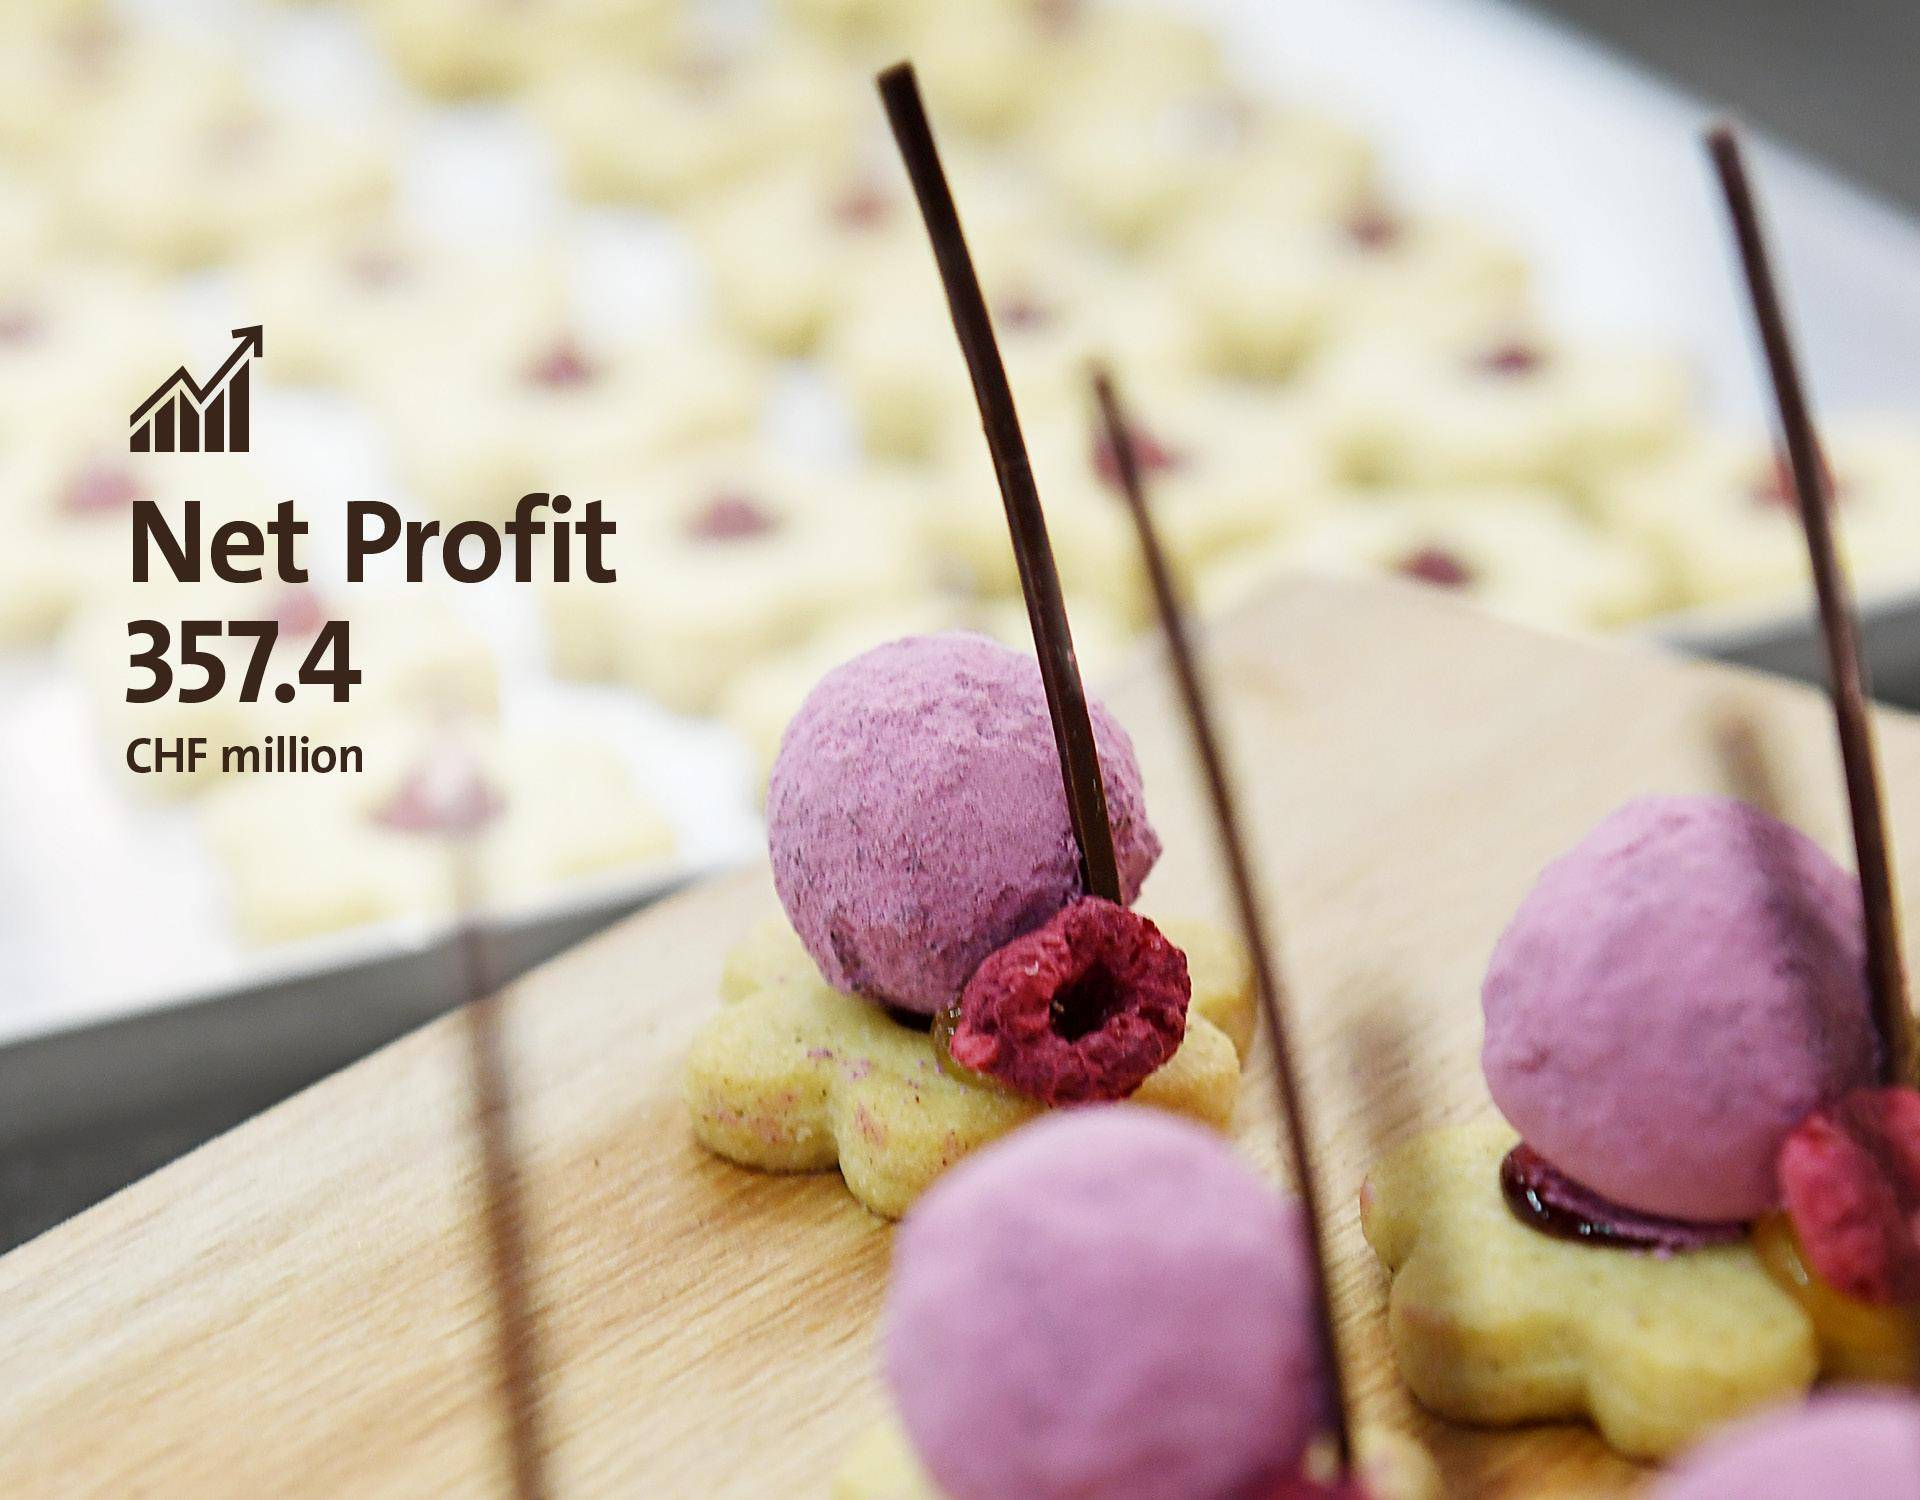 Image Slider Net Profit Fiscal Year 2017/18 Barry Callebaut Group